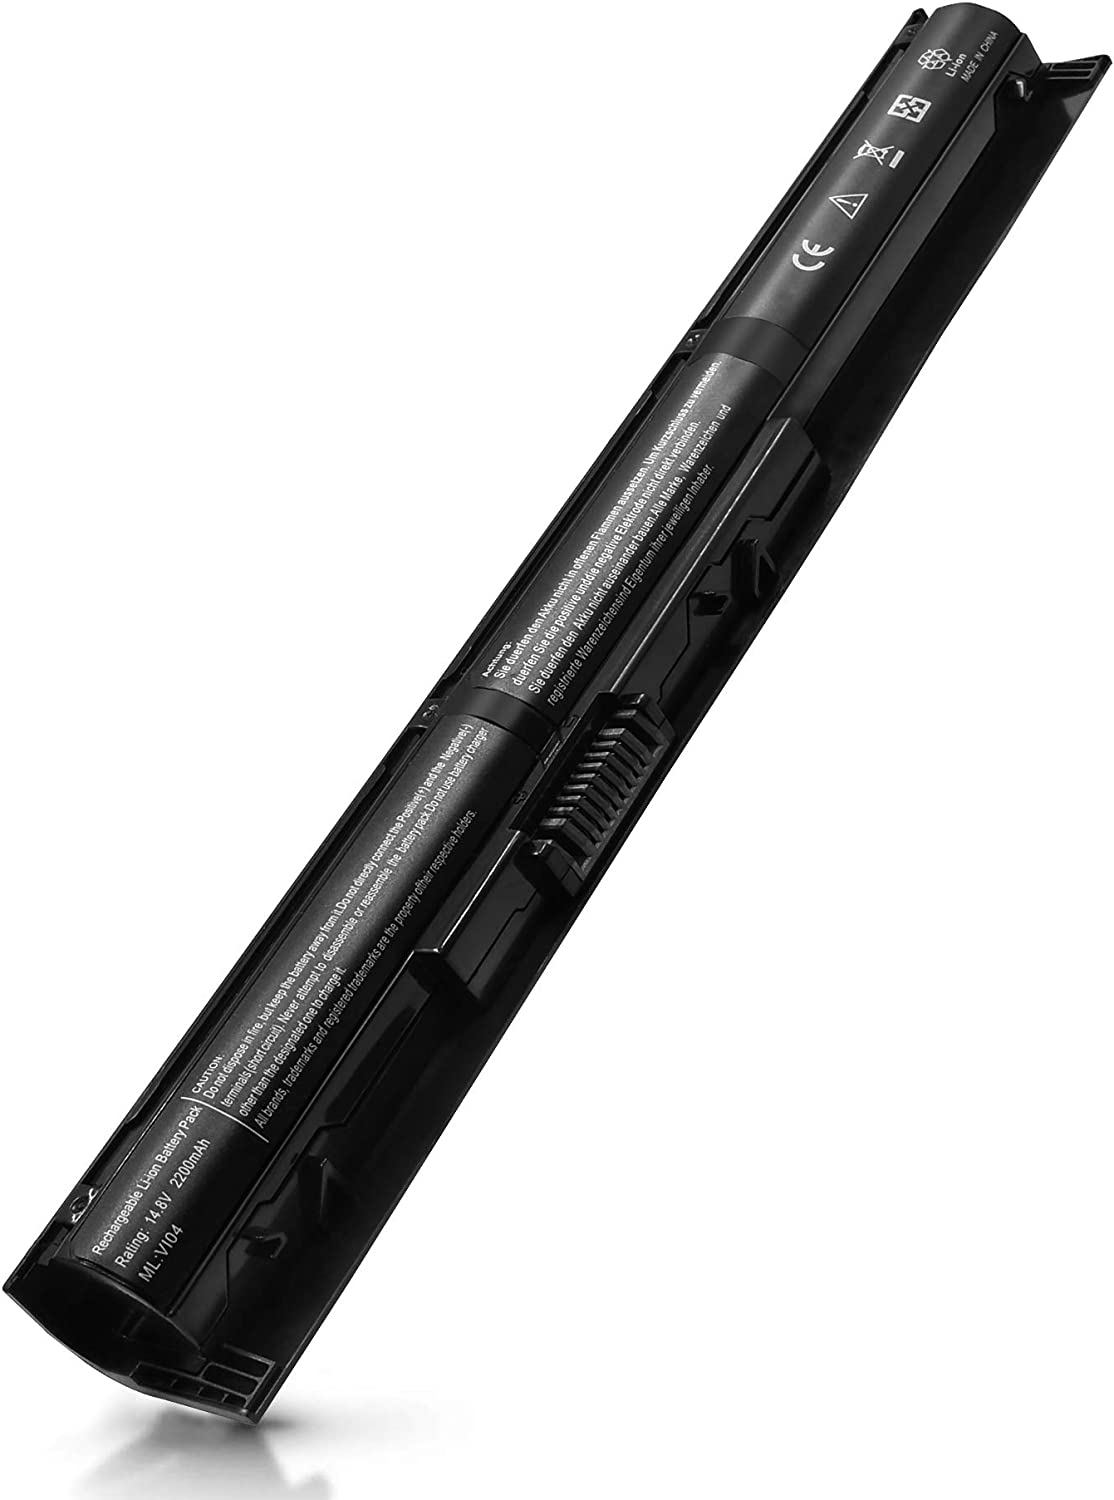 Ulvench VI04 Laptop Battery Replacement for HP 756743-001 756745-001 756479-421, HP ProBook 440 G2, 450 G2, TPN Q139, Q140, Q141, Q142, Q143, HP Envy 14 15 17 Series - fit for HSTNN-DB6K HSTNN-LB6K